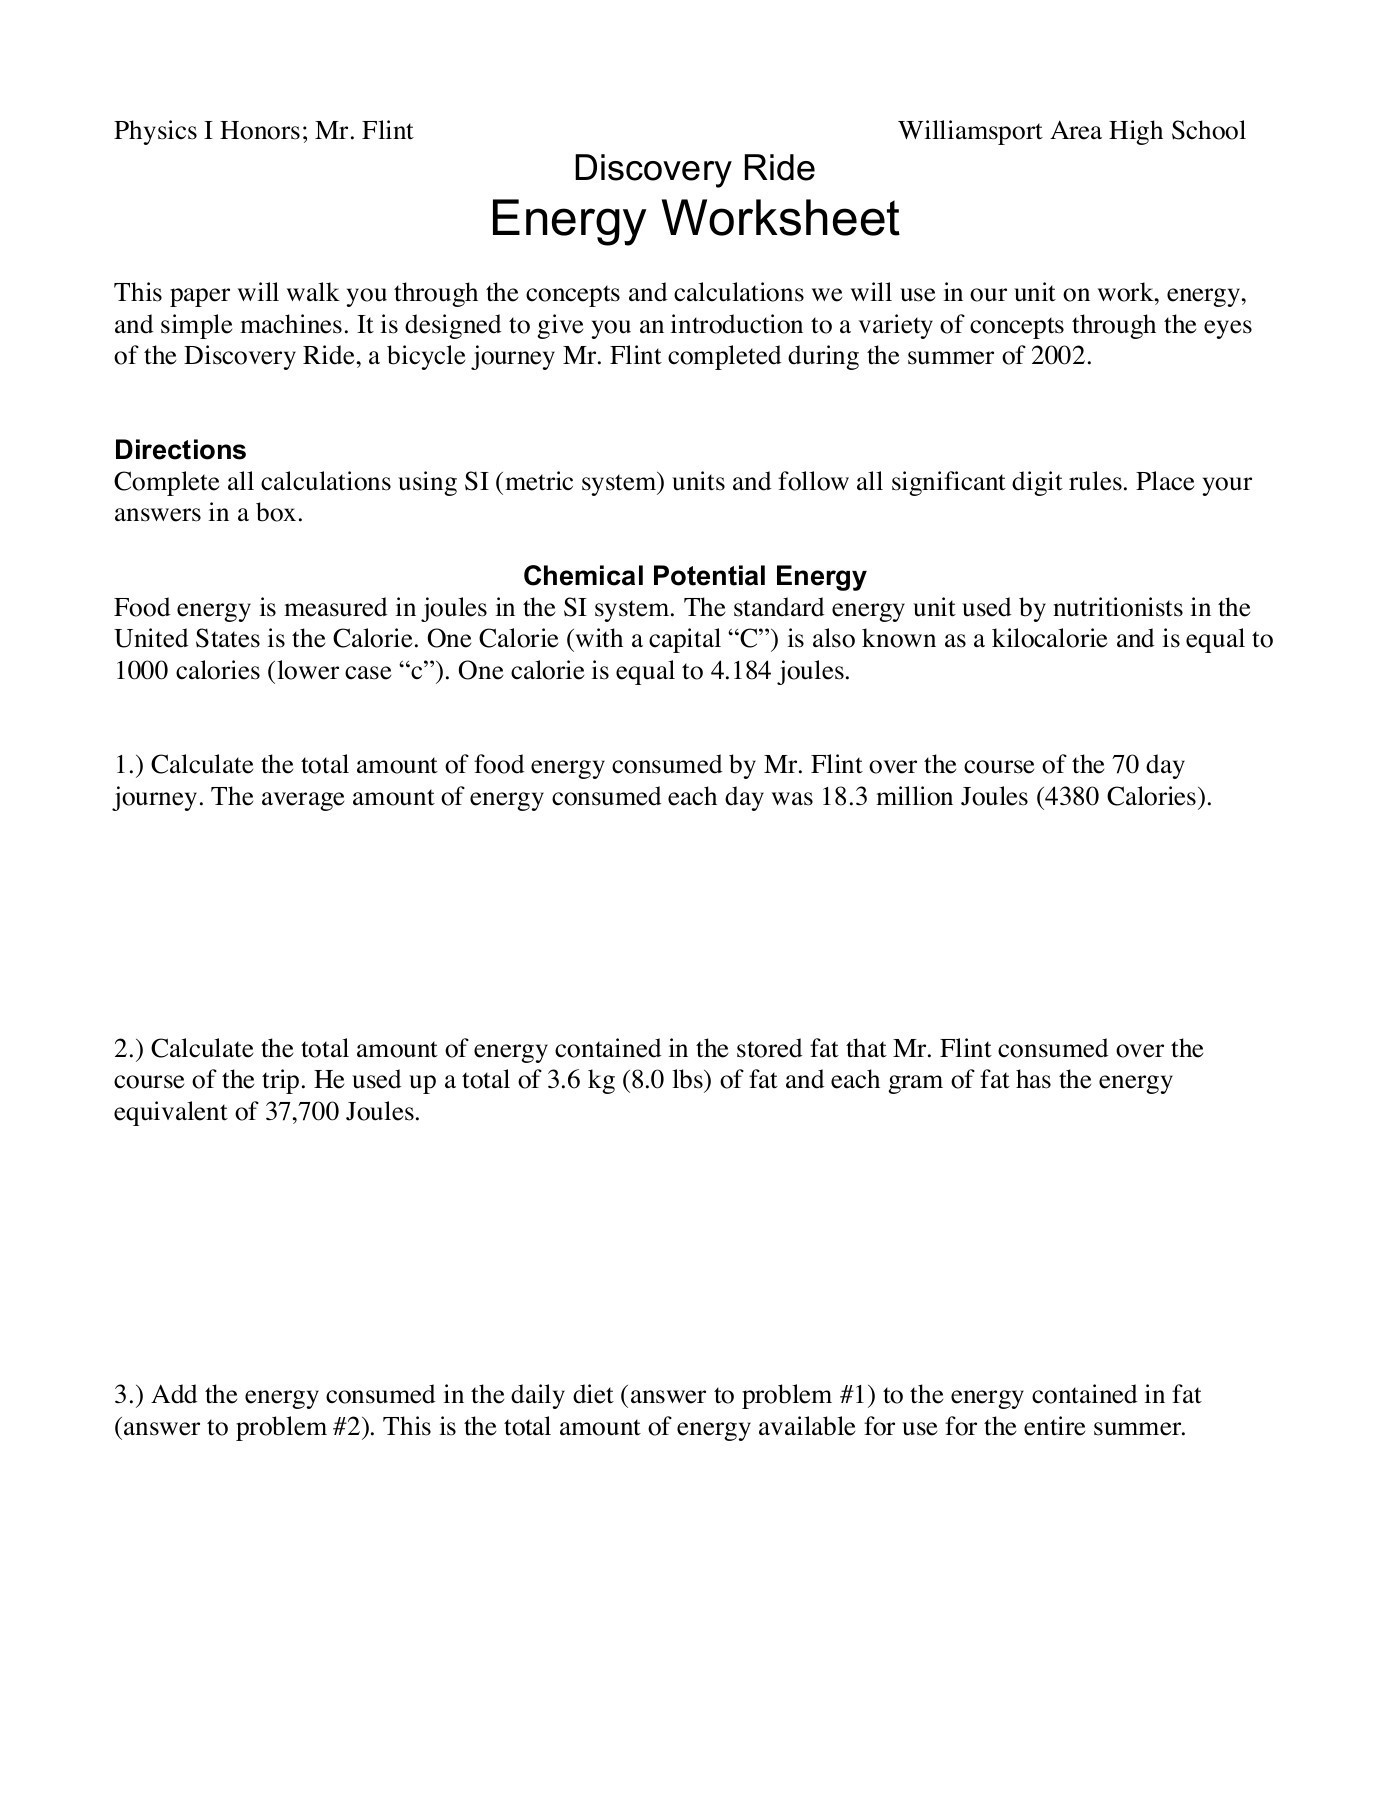 Simple Machines Worksheet High School Worksheet For